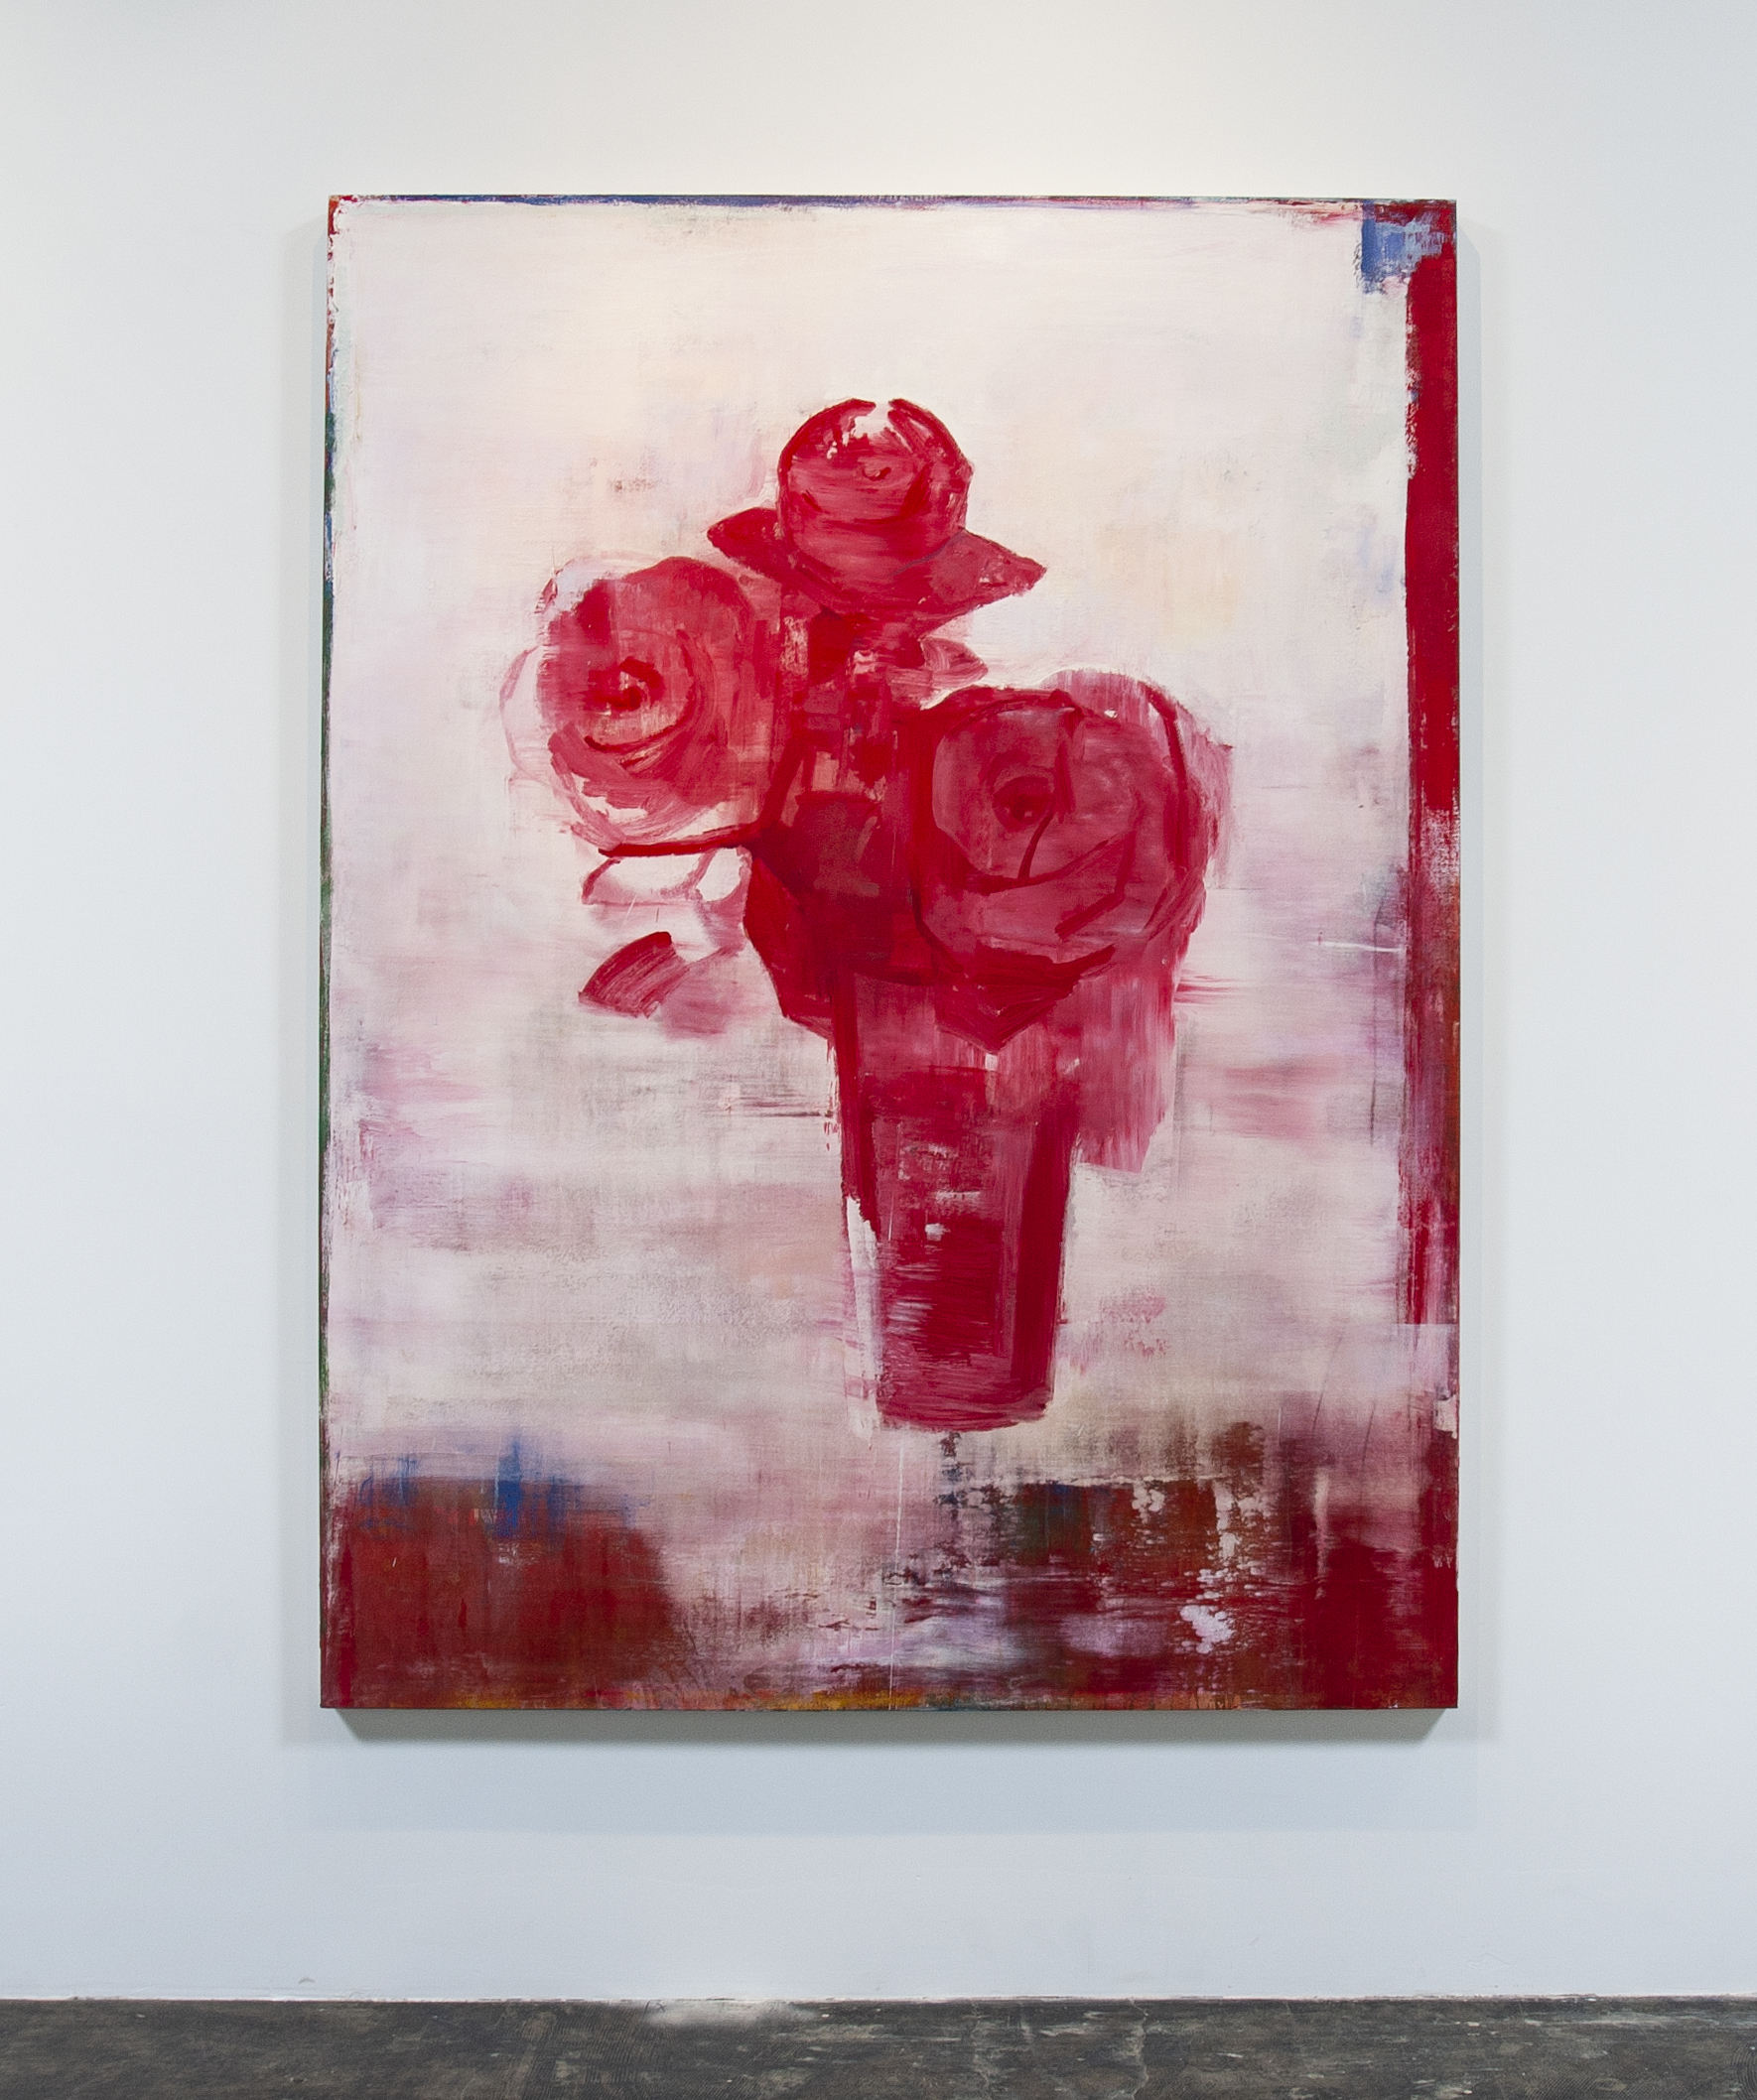 Daniel Brice, Polaroid Painting (White/Red), 2018, acrylic and oil on canvas, 84 x 60 inches